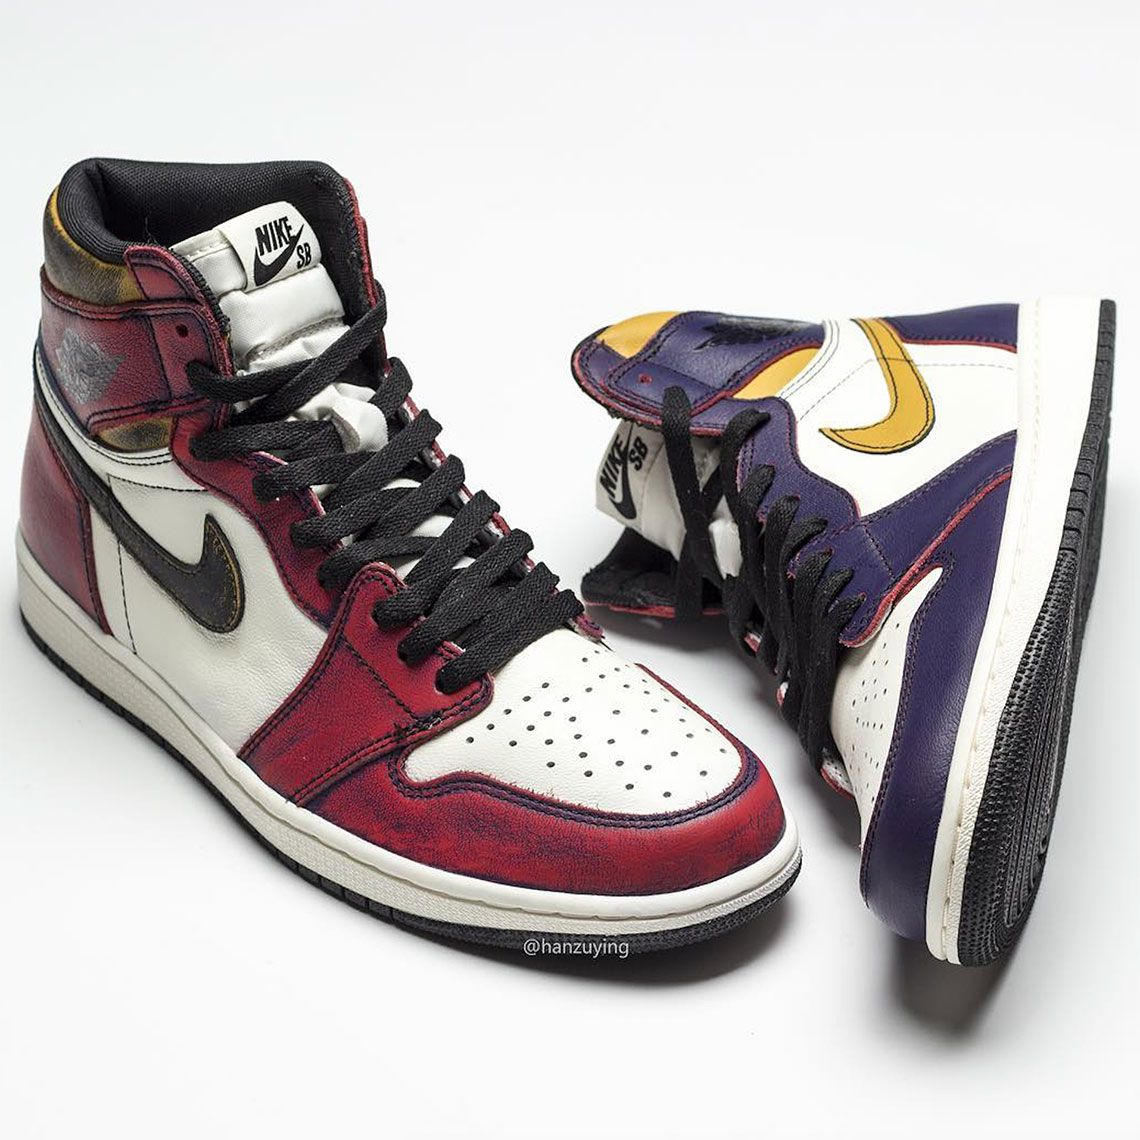 website for discount the cheapest shop best sellers Air Jordan 1 SB Shoes - Lakers Bulls | Air jordans, Jordan 1, Nike sb